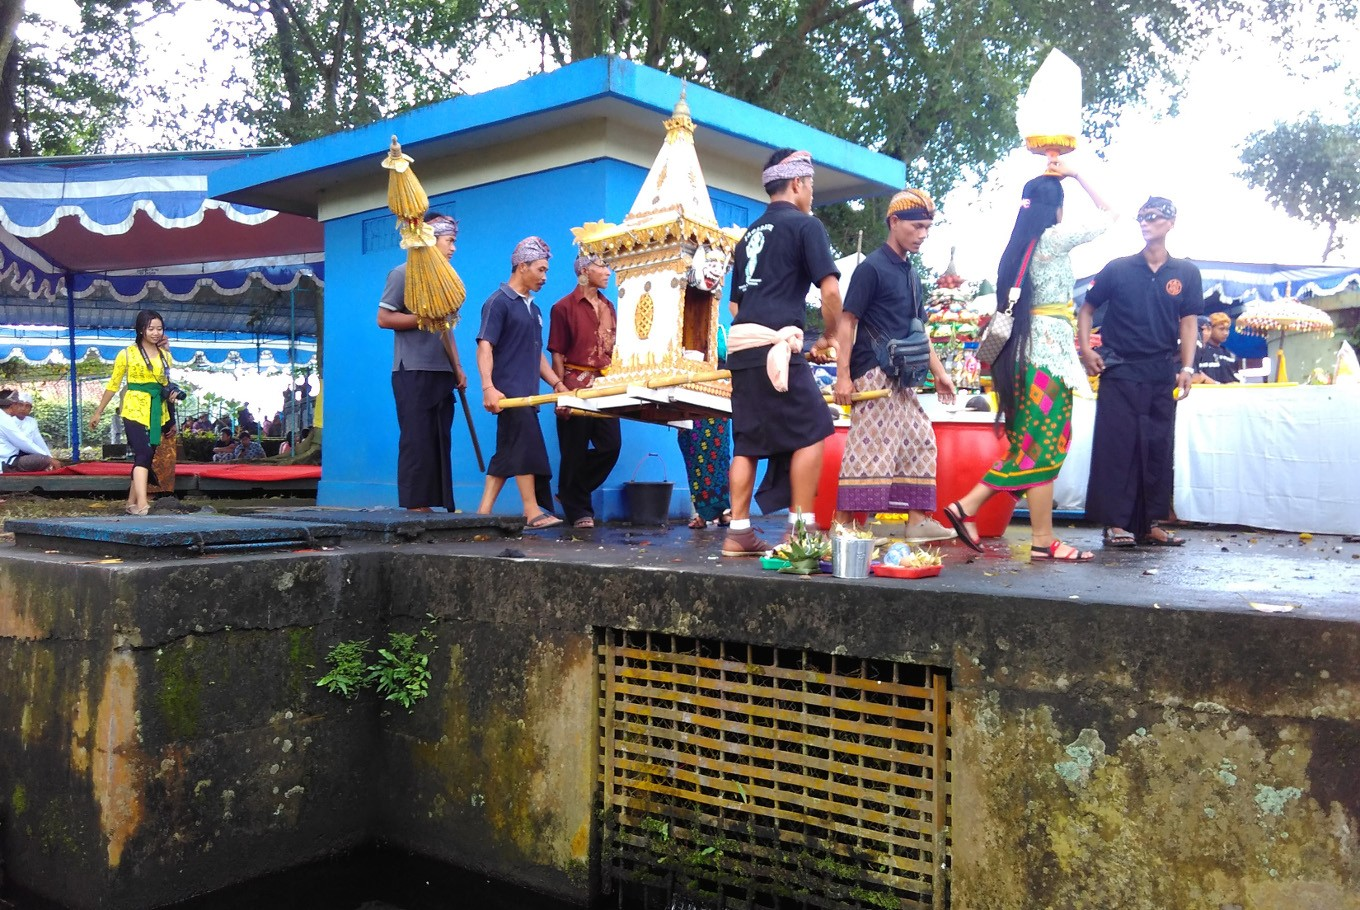 Hindus place their offerings at the edge of Umbul Geneng in Klaten, Central Java, on Sunday, March 11. Melasti is held to mark the beginning of the ceremonies prior to Nyepi (Hindu Day of Silence), which will be commemorated on March 17.